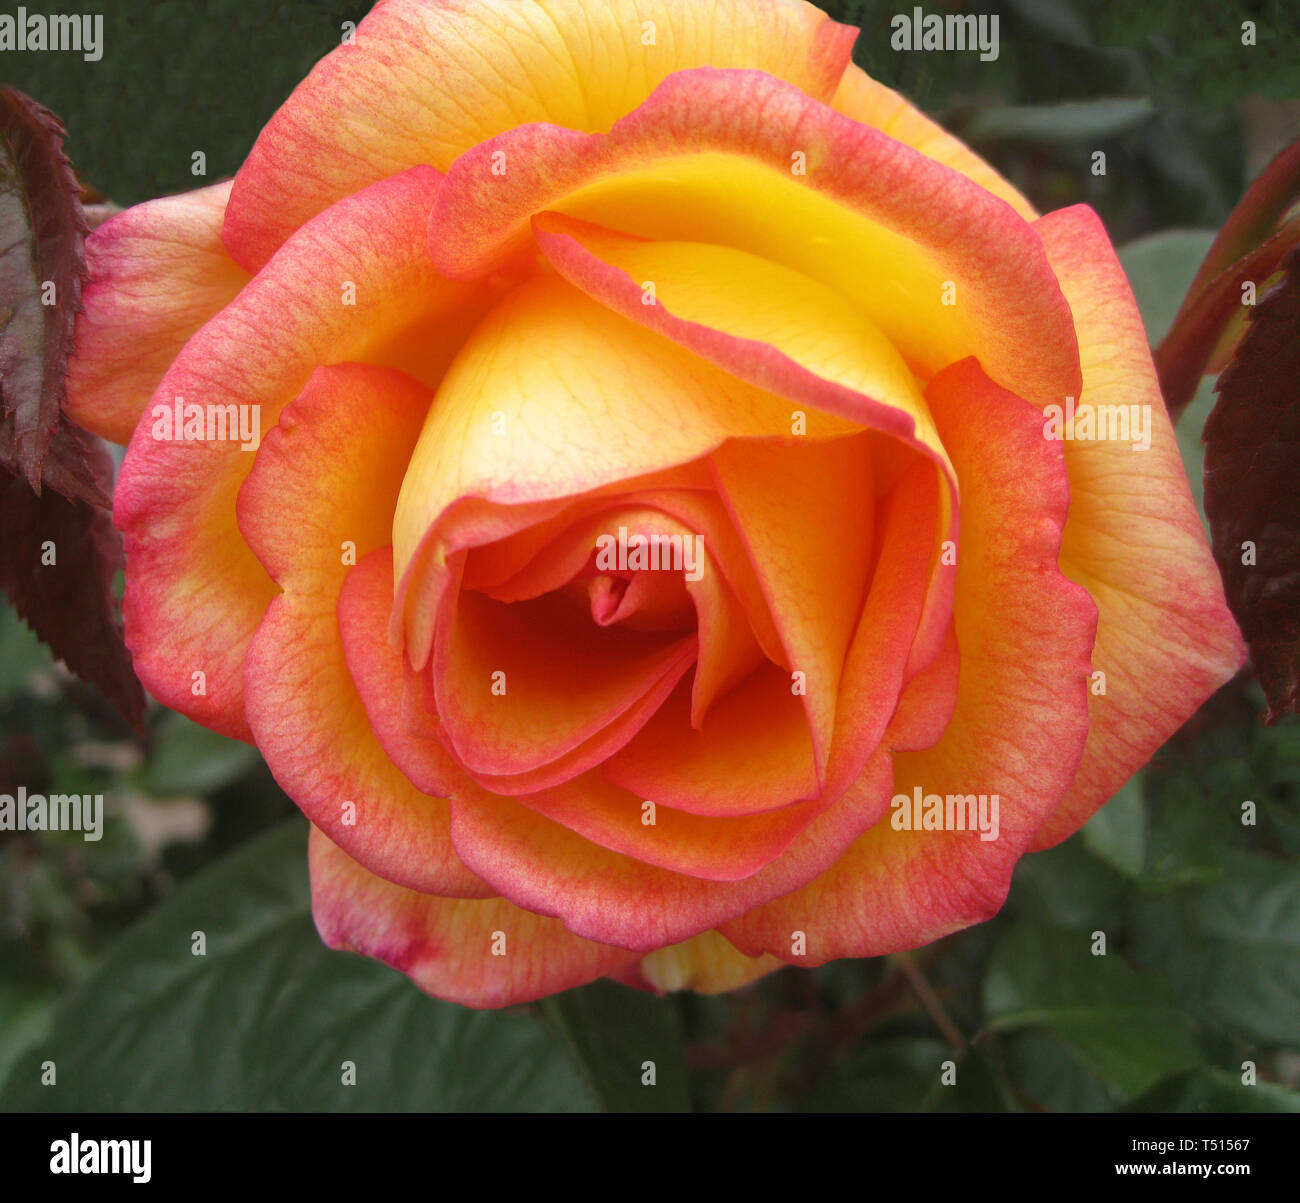 This close-up shows the petals of a beautiful yellow and  pink rose blossom folding back from the center of this popular ornamental garden flower. The rose is a type of flowering shrub and gets its name from the Latin word Rosa. Roses belong to the family of plants called Rosaceae and are considered the most popular flowers in the world. With more than 150 species of roses and thousands of hybrids, roses can be found in nearly every color and dozens of different shapes. - Stock Image